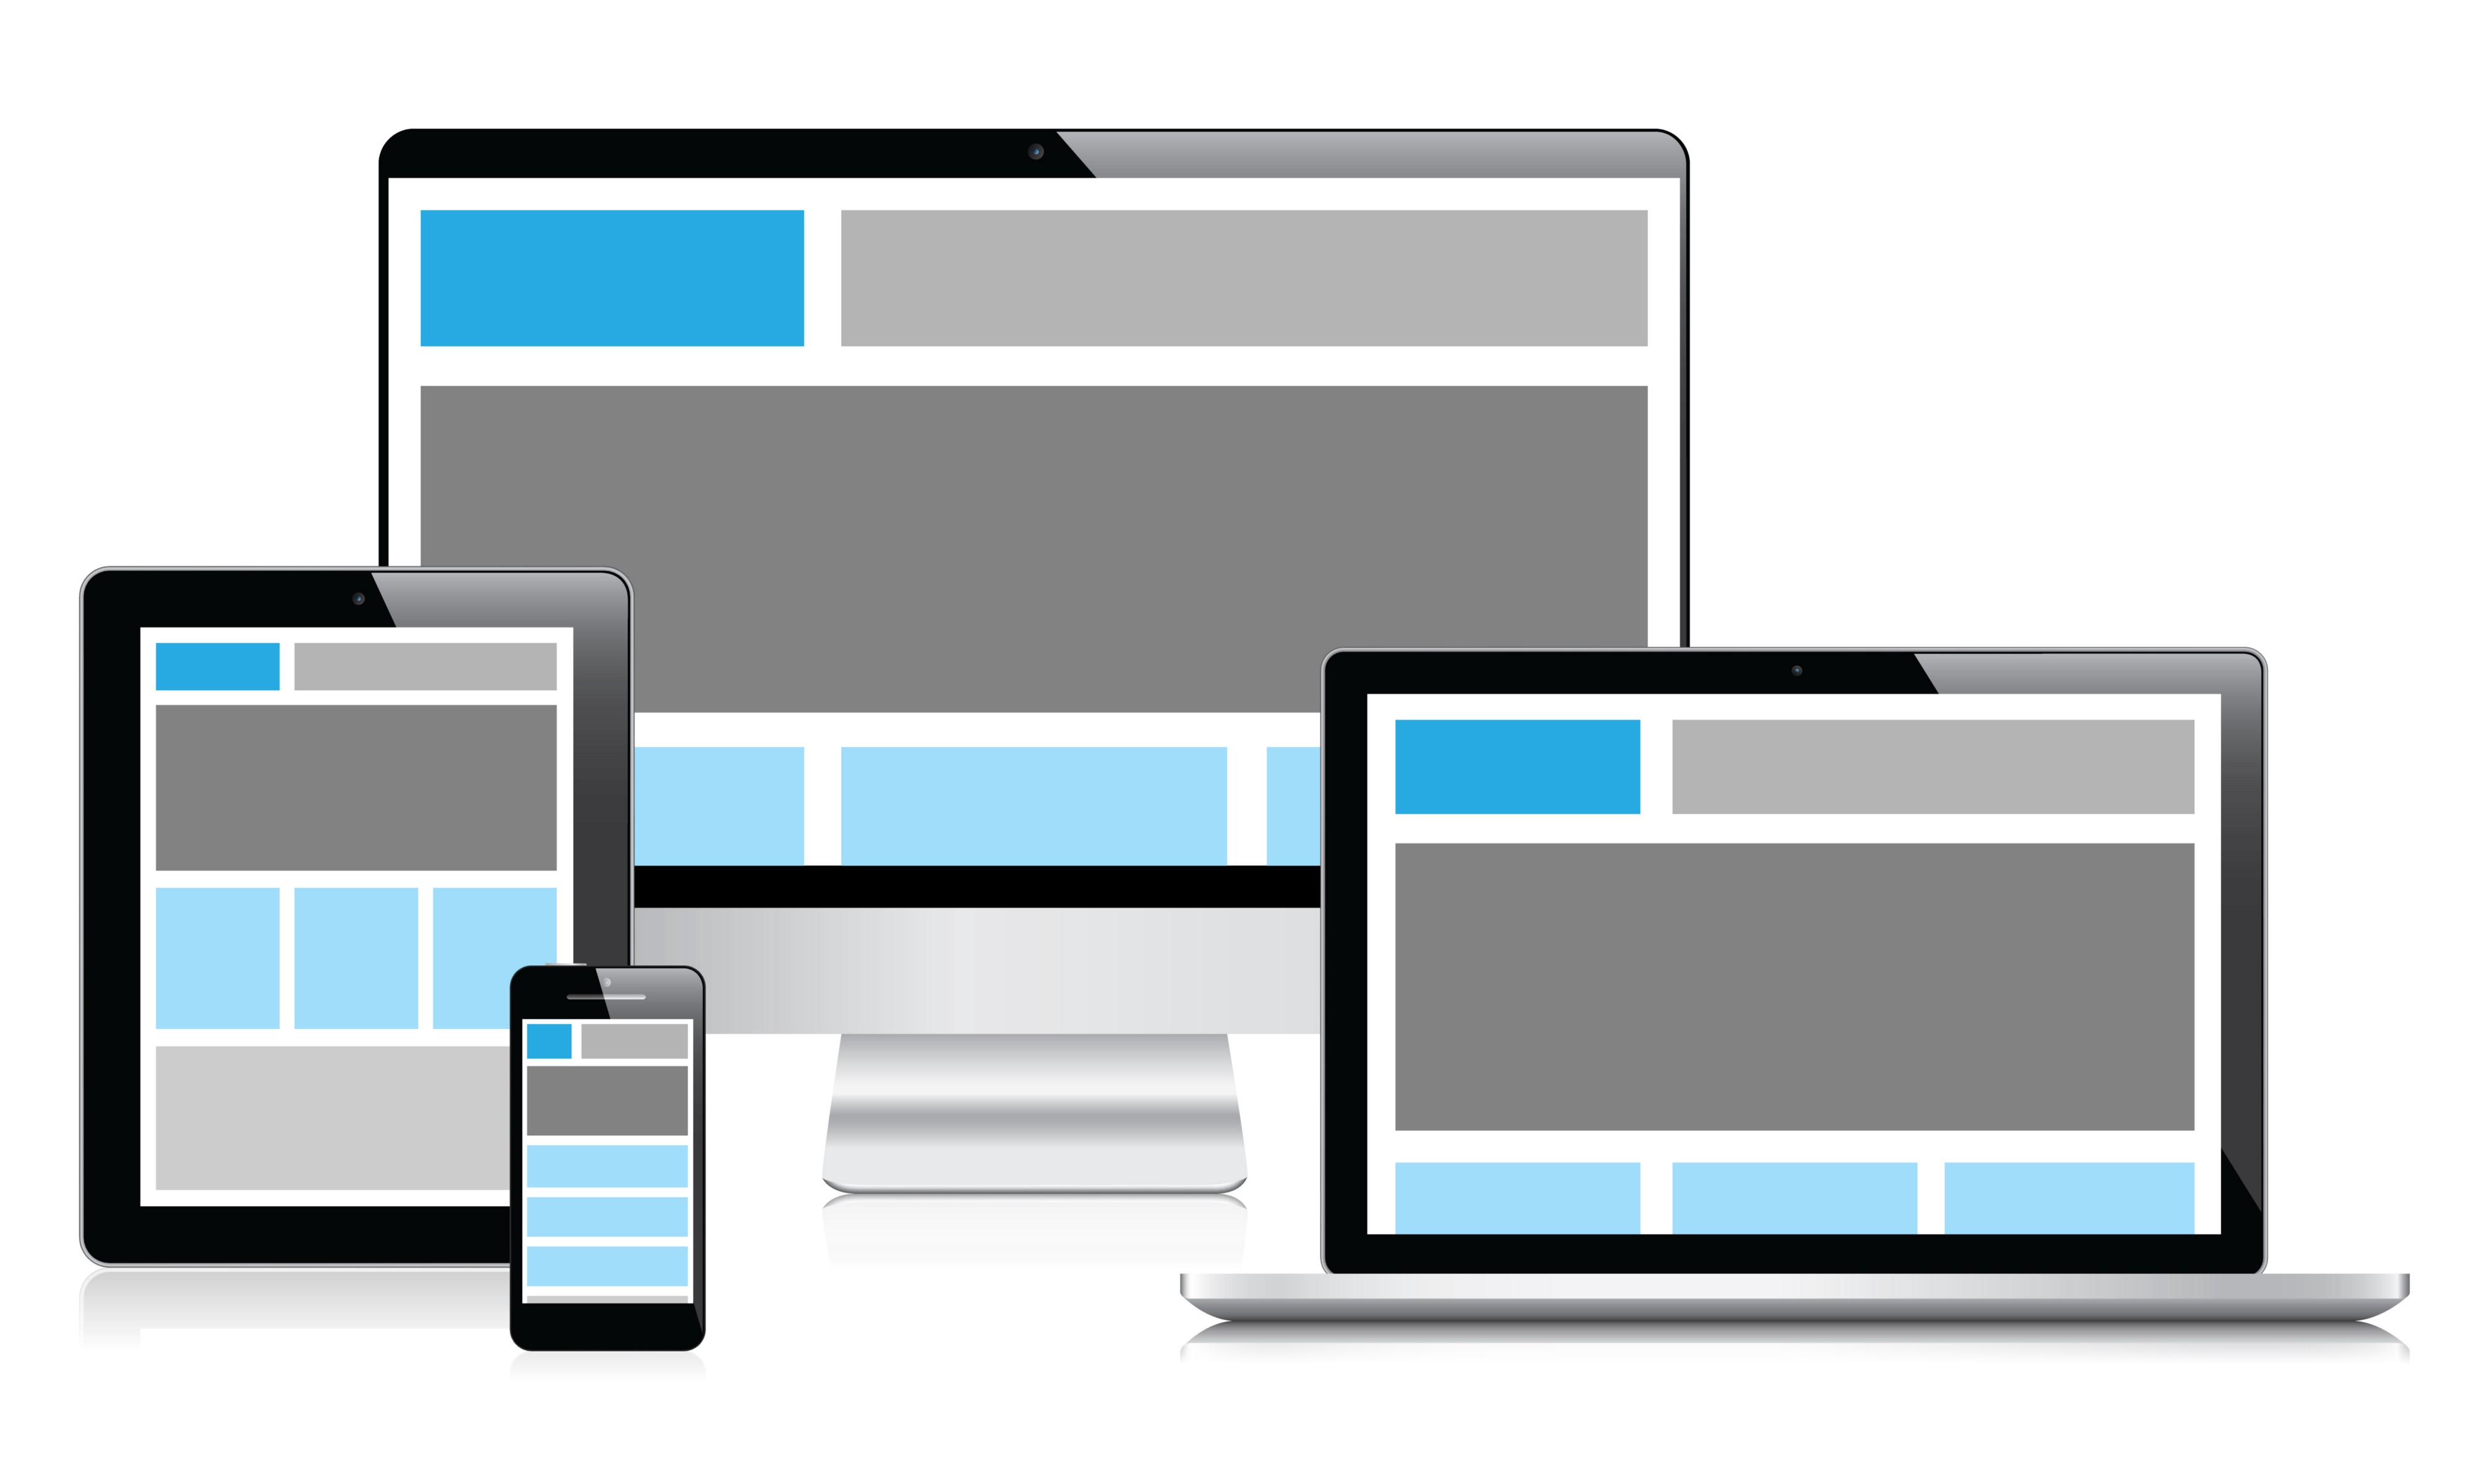 How to create responsive image in css